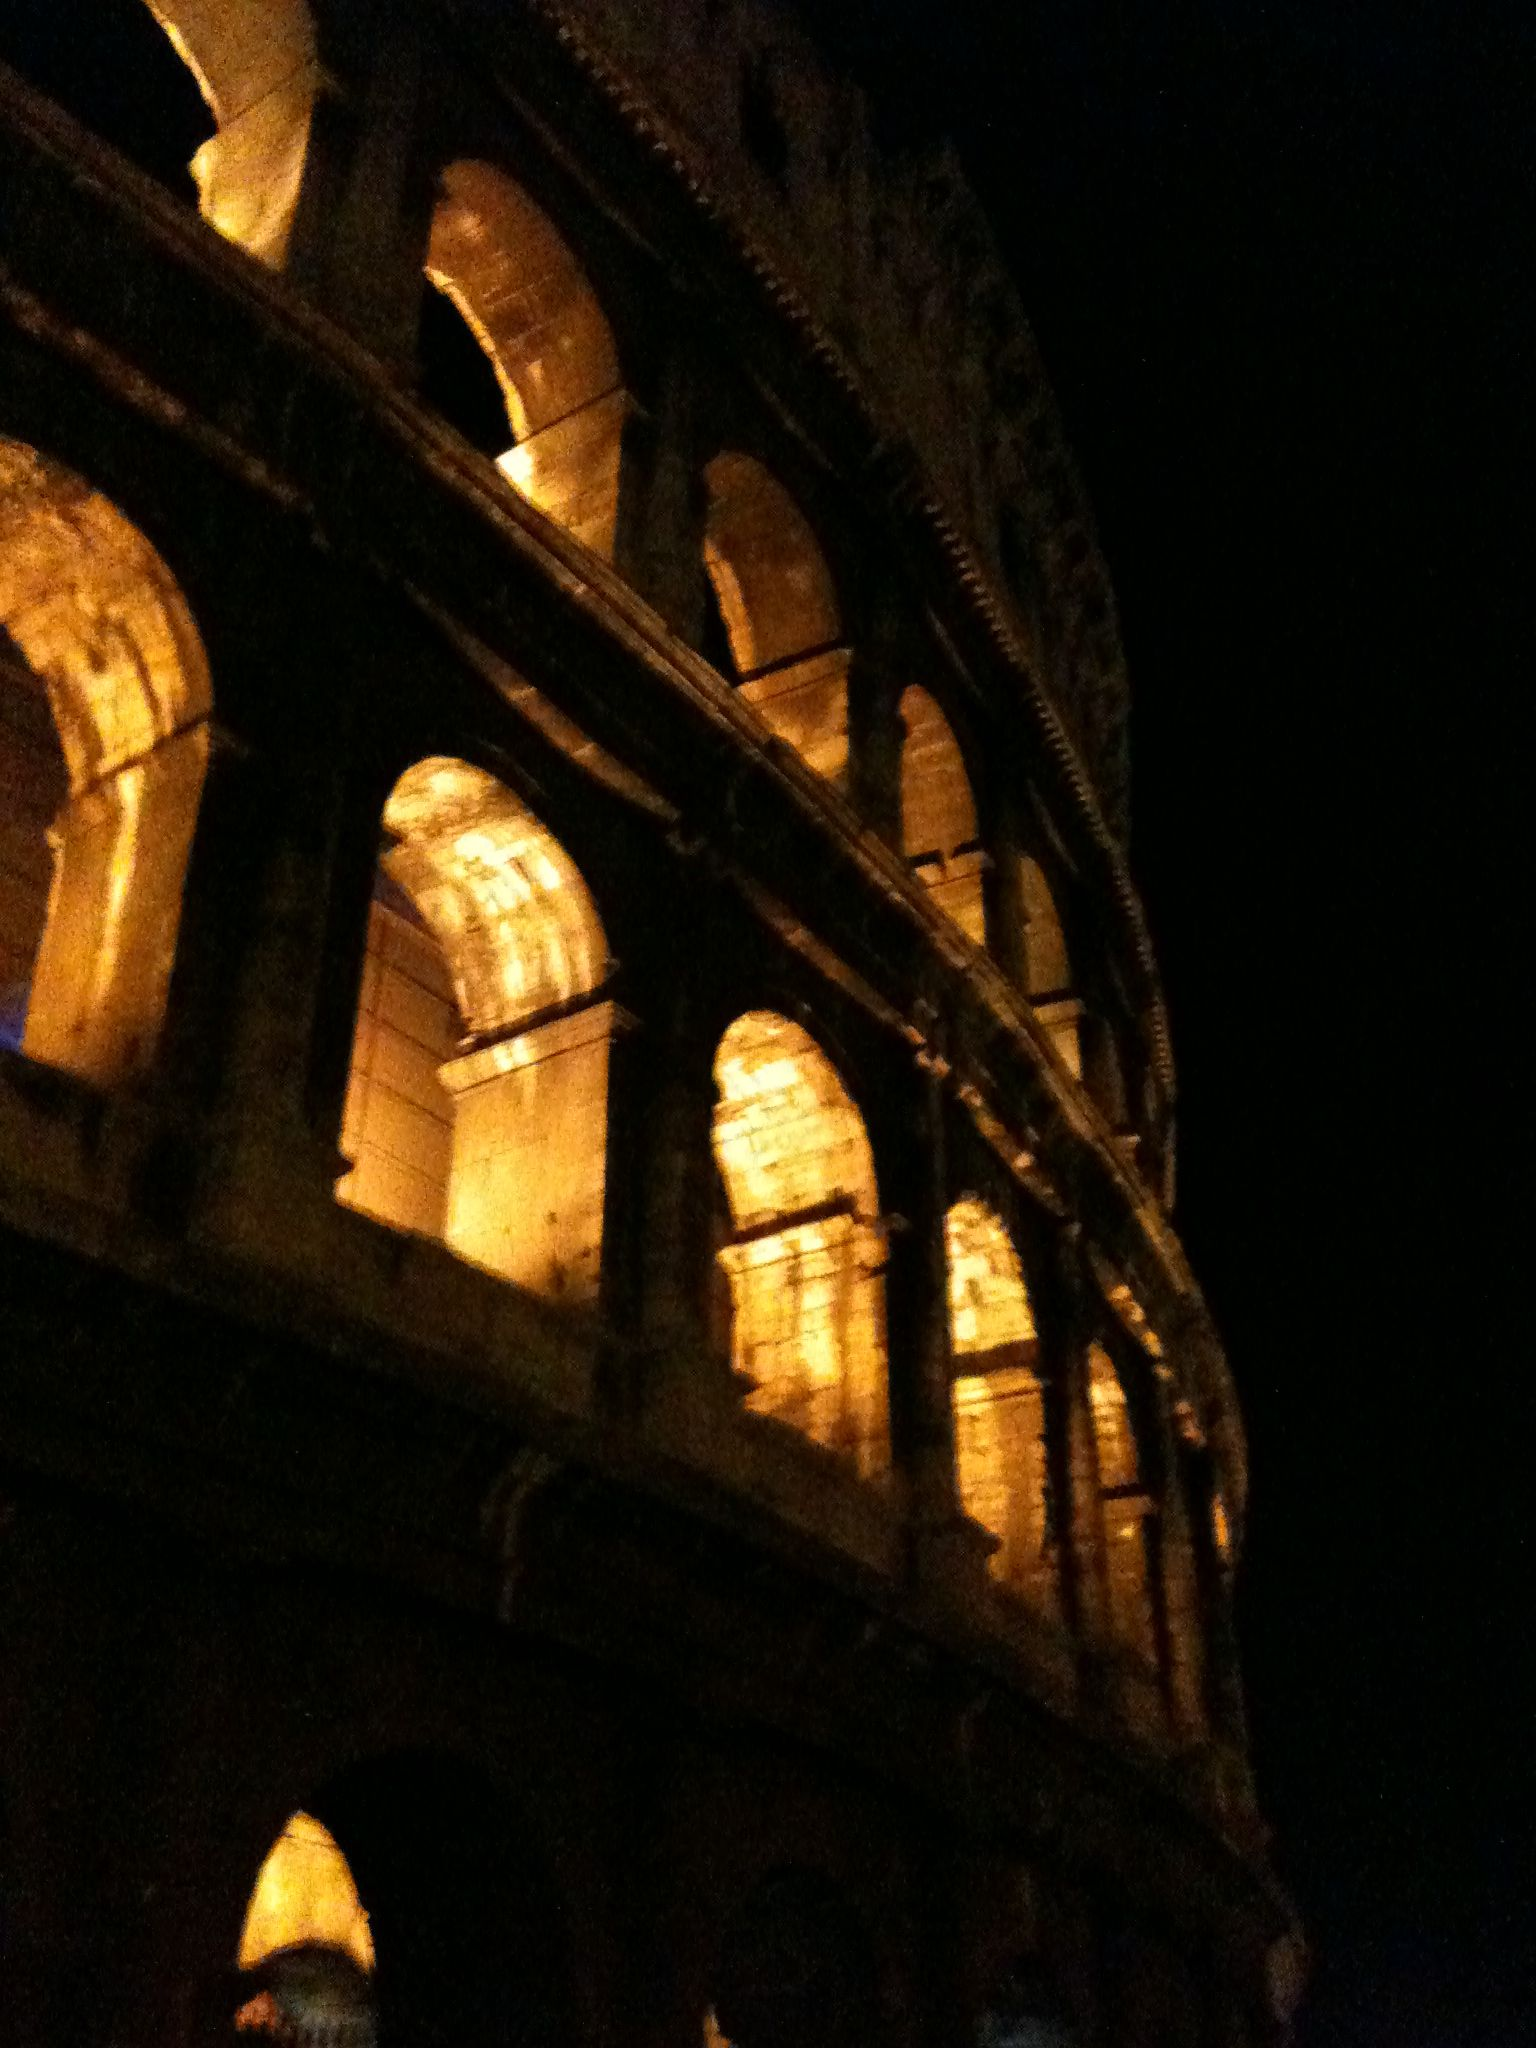 Colosseo - Rome (Italy)